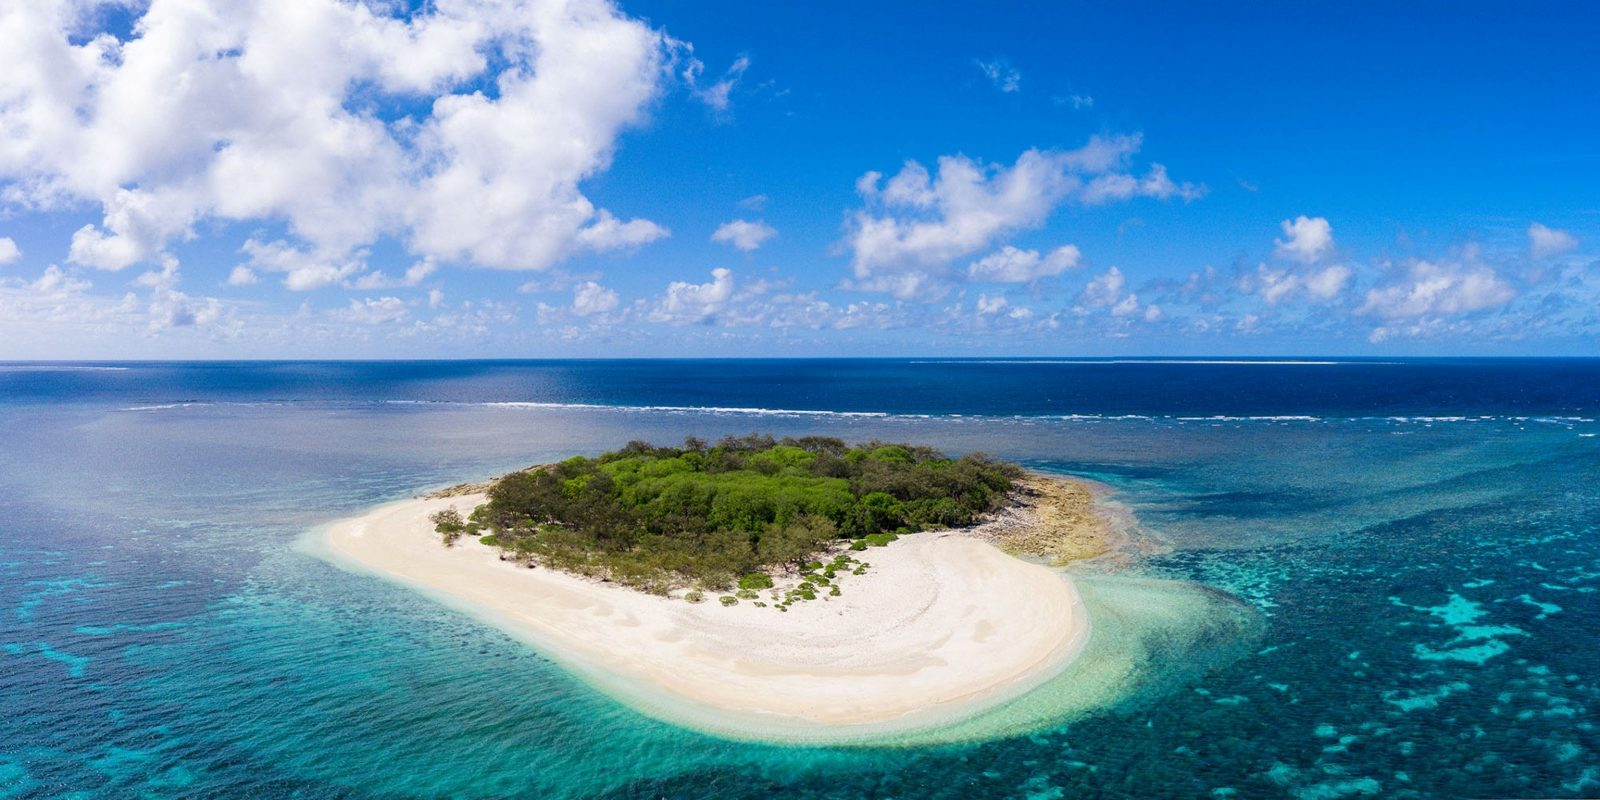 Enjoy a one-of-a-kind Great Barrier Reef getaway in a setting of unrivalled natural beauty